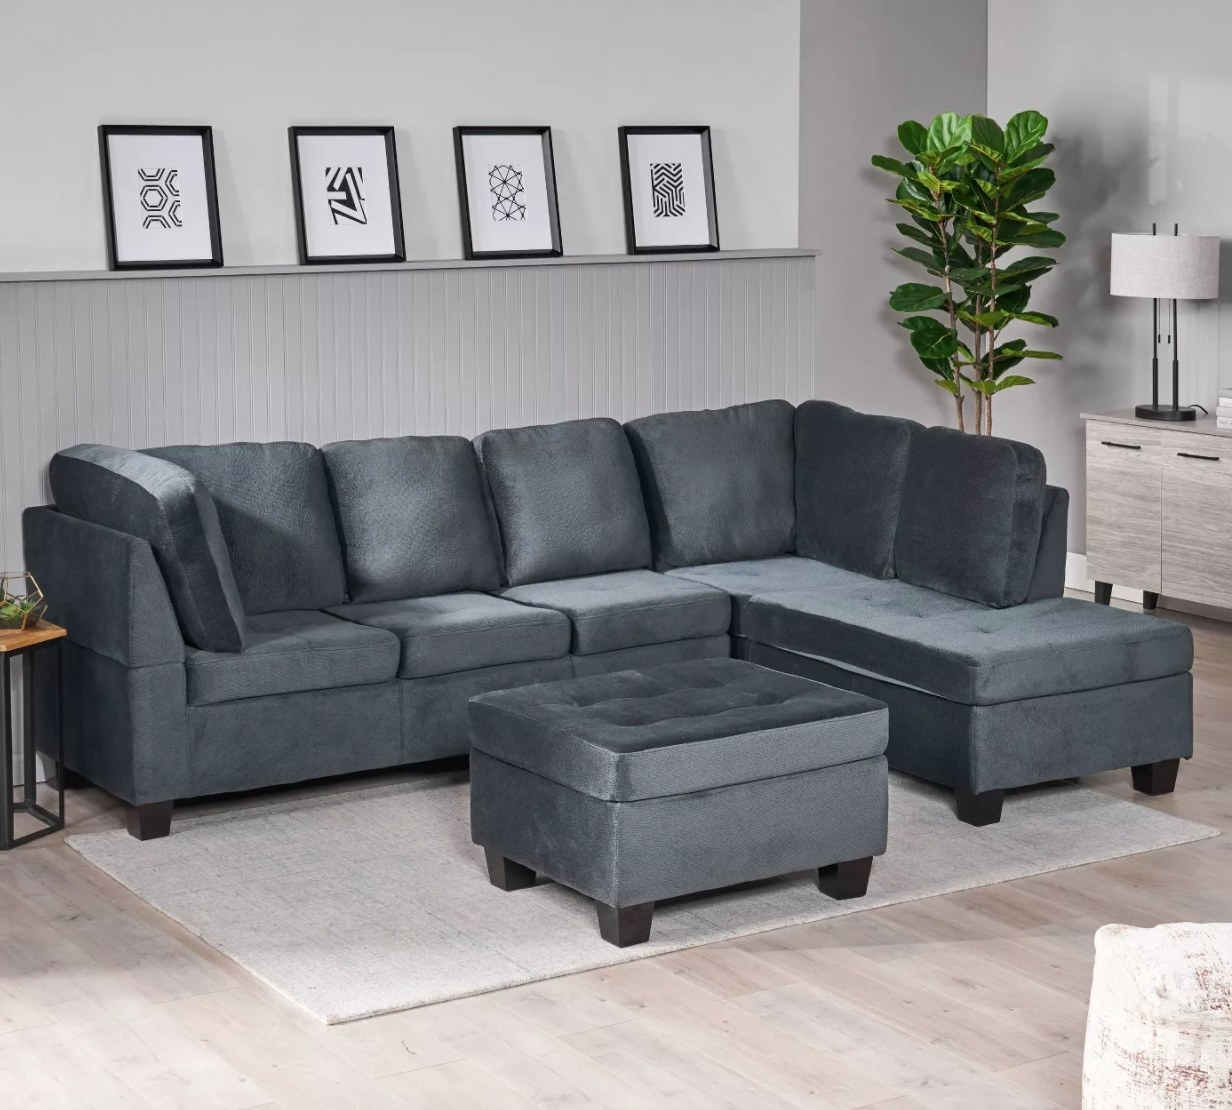 A gray sectional with chaise and ottoman with seats for six